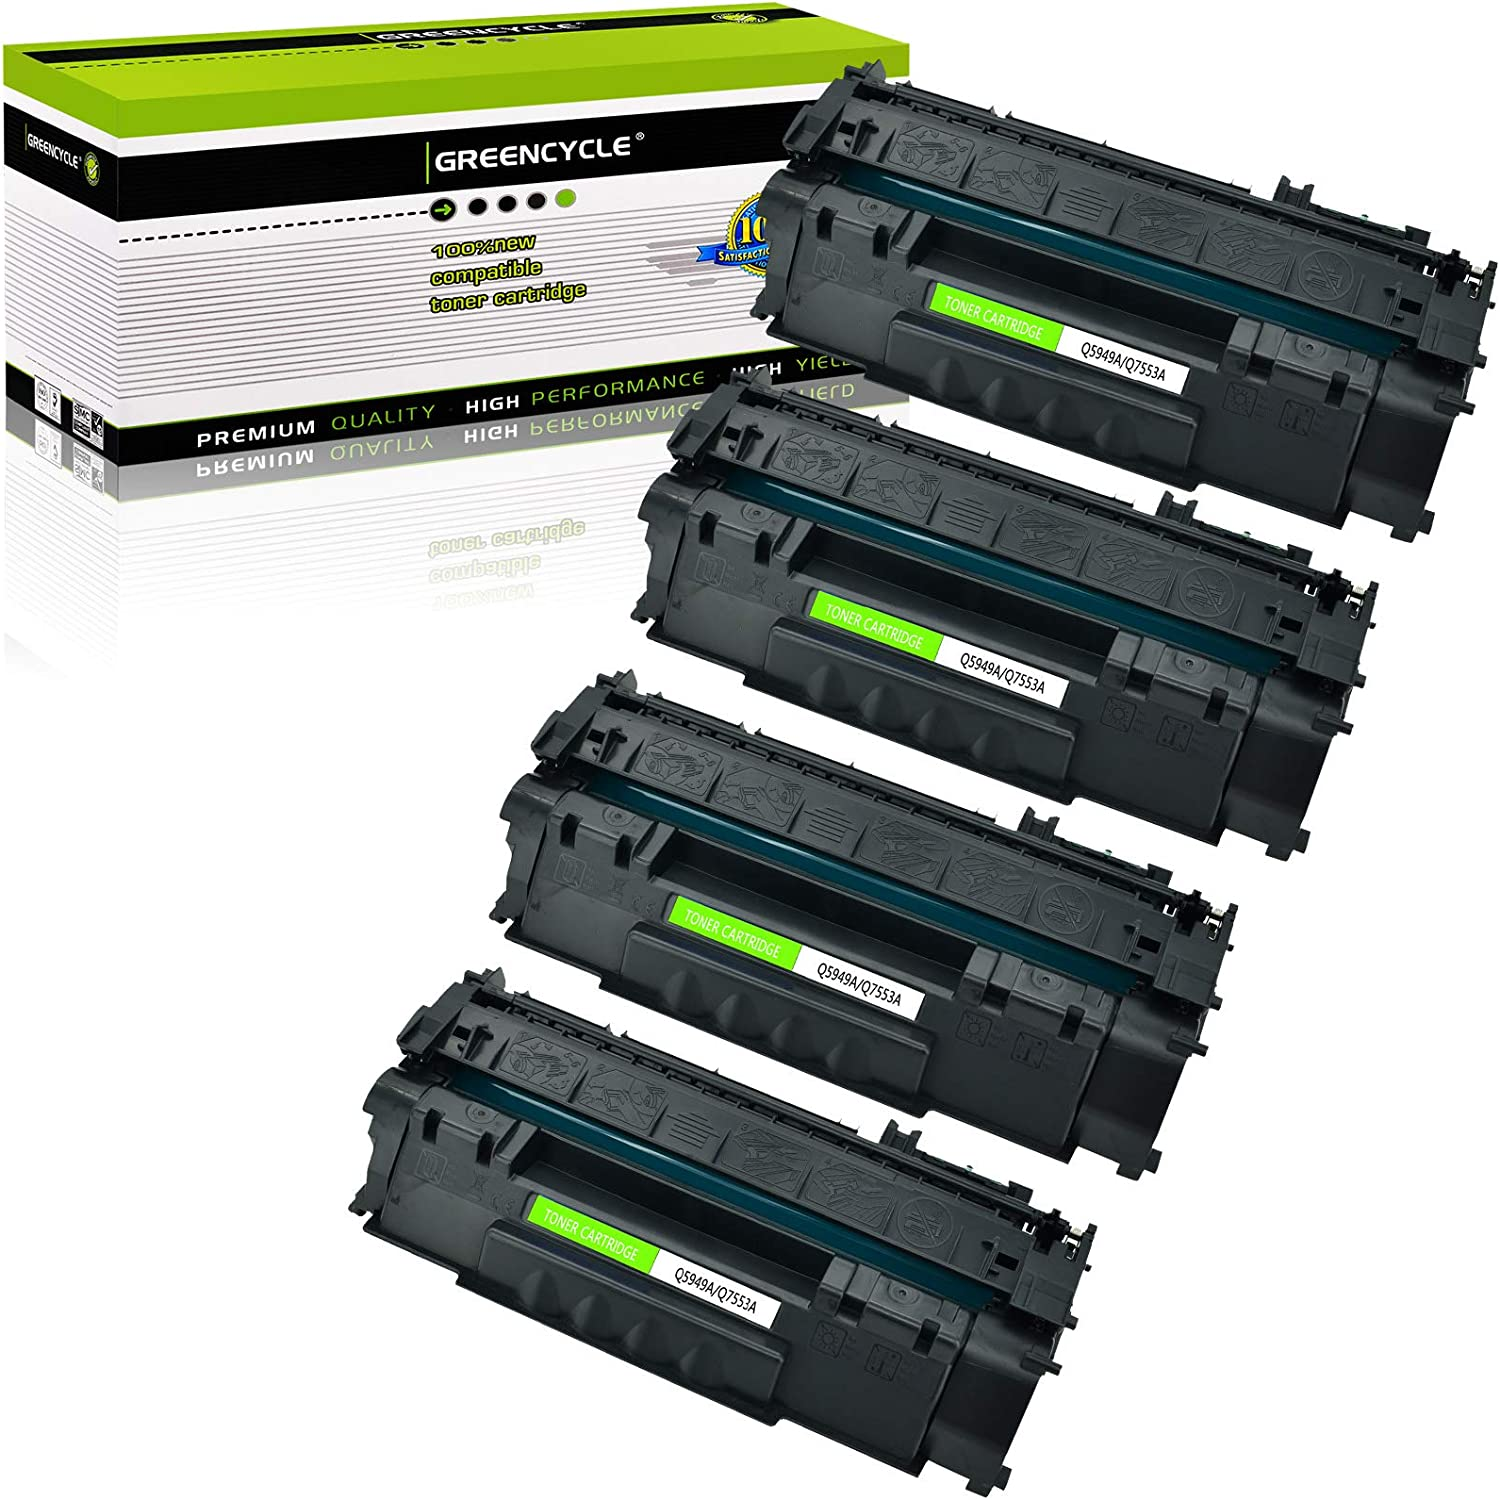 GREENCYCLE 4 Pack Q5949A 49A Black Toner Cartridge Compatible for HP Laserjet 1320NW 1160 Laser Printer